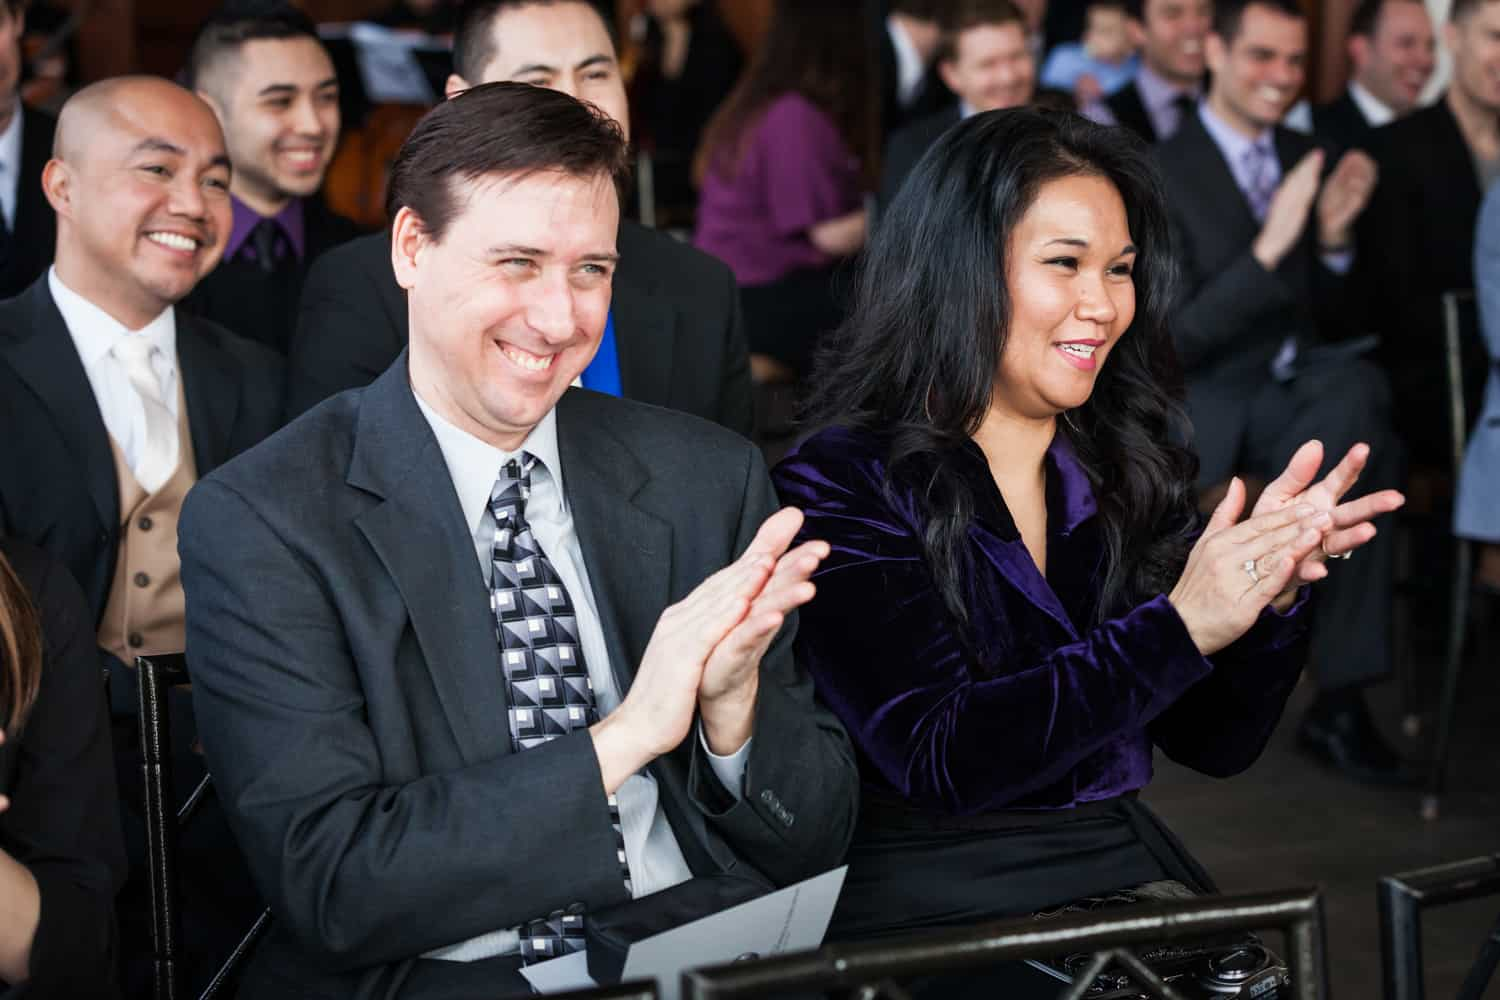 Two guests clapping during ceremony at a Lighthouse at Chelsea Piers wedding